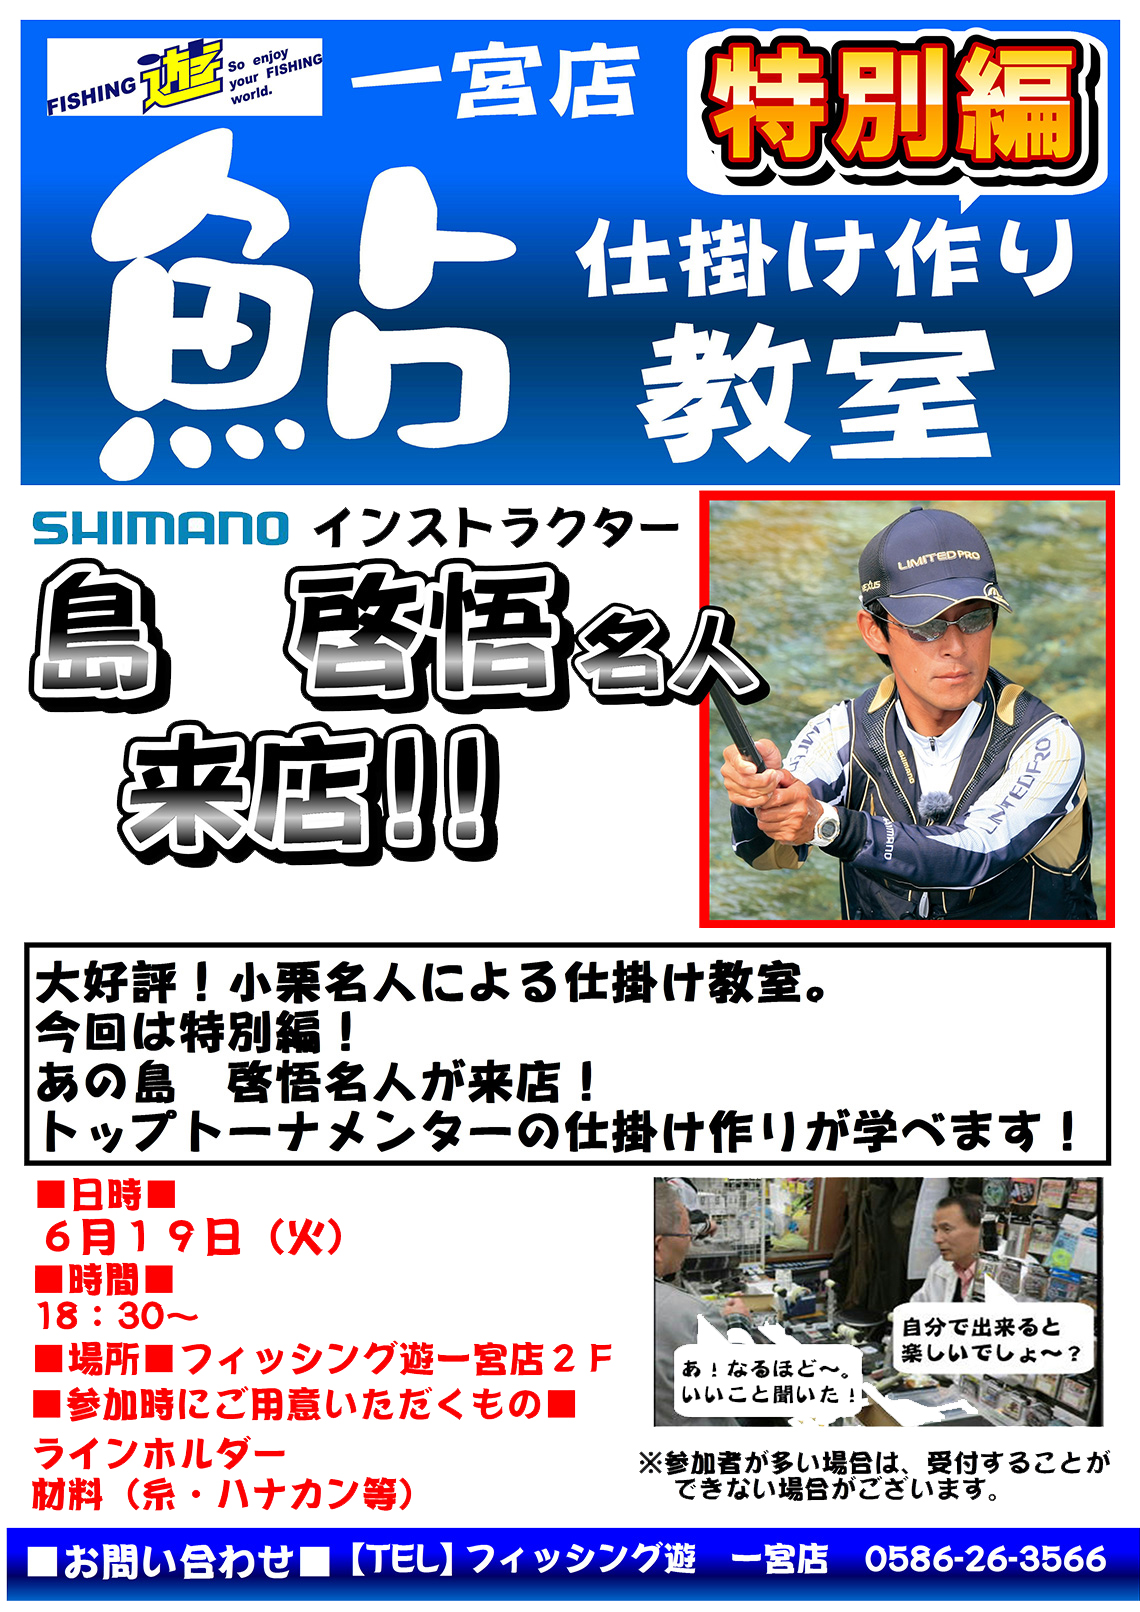 <a href=&quot;http://fishing-you.com/event/180619ichinomiya&quot;>一宮店 鮎仕掛け作り教室(特別編)</a>